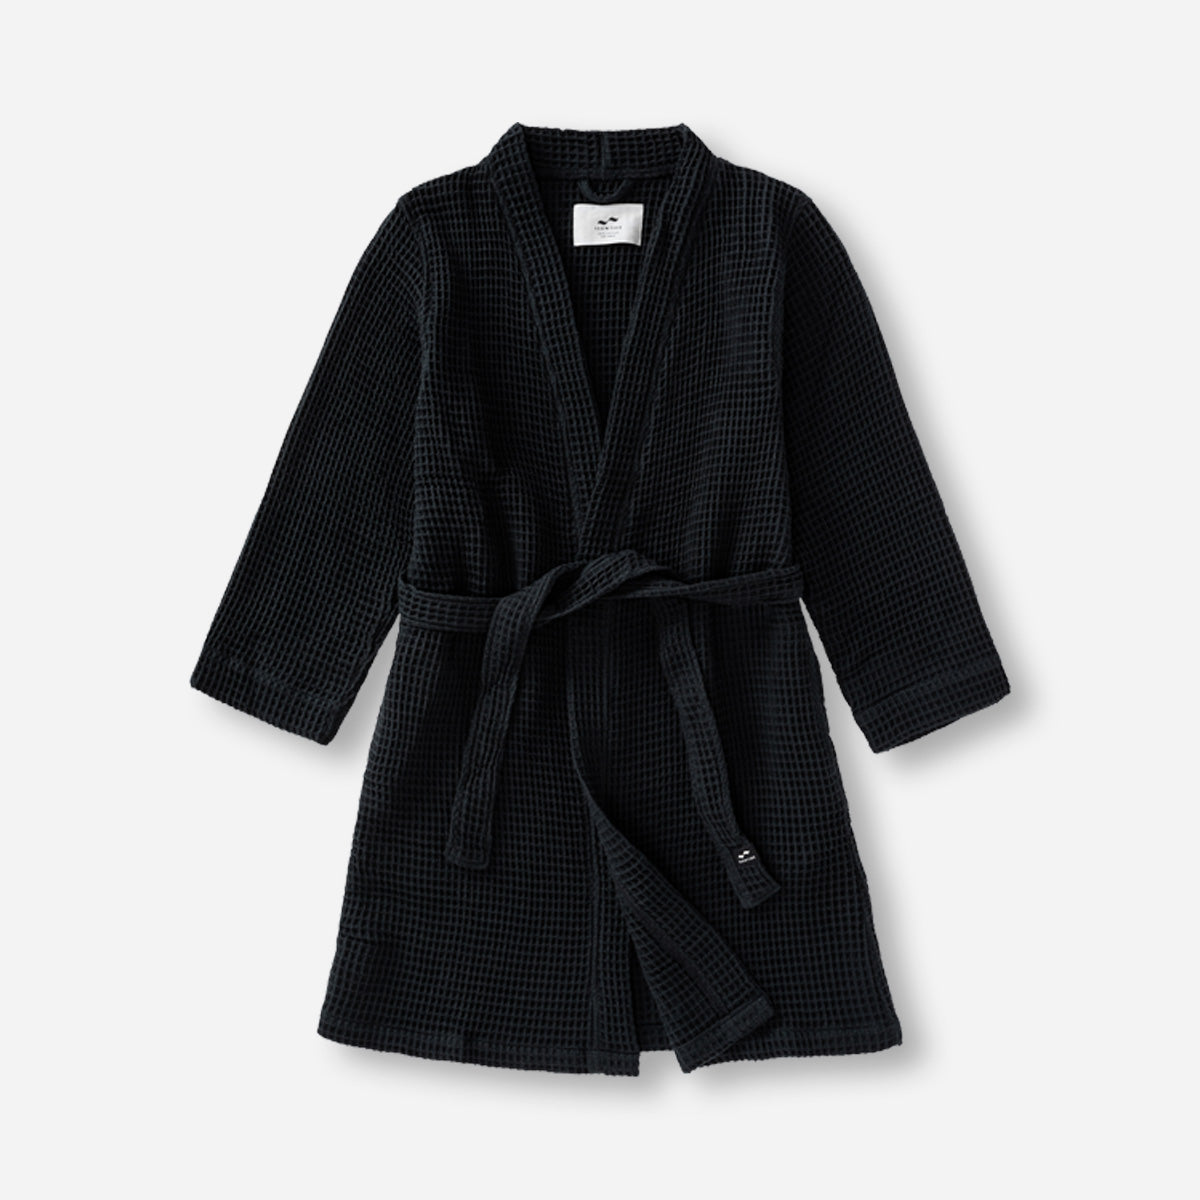 Guild Bath Robe - Black - Small / Medium - Slowtide